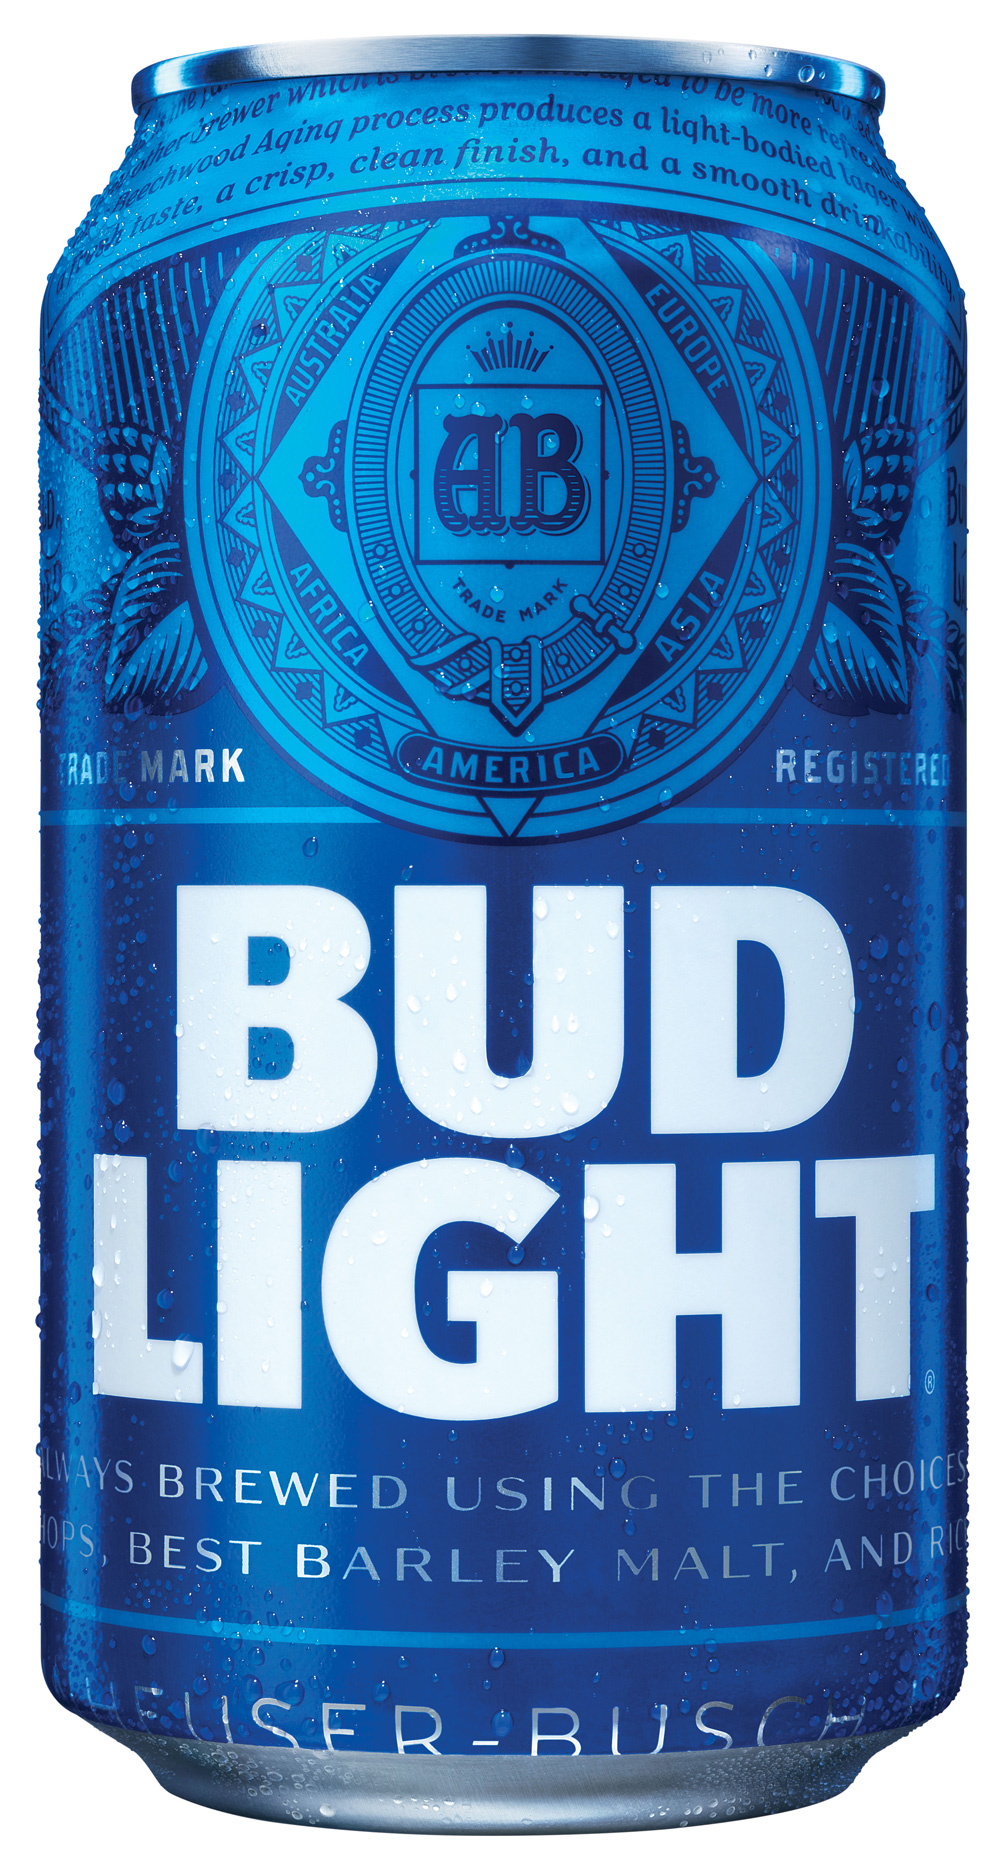 Bud_light_2016_can.jpg